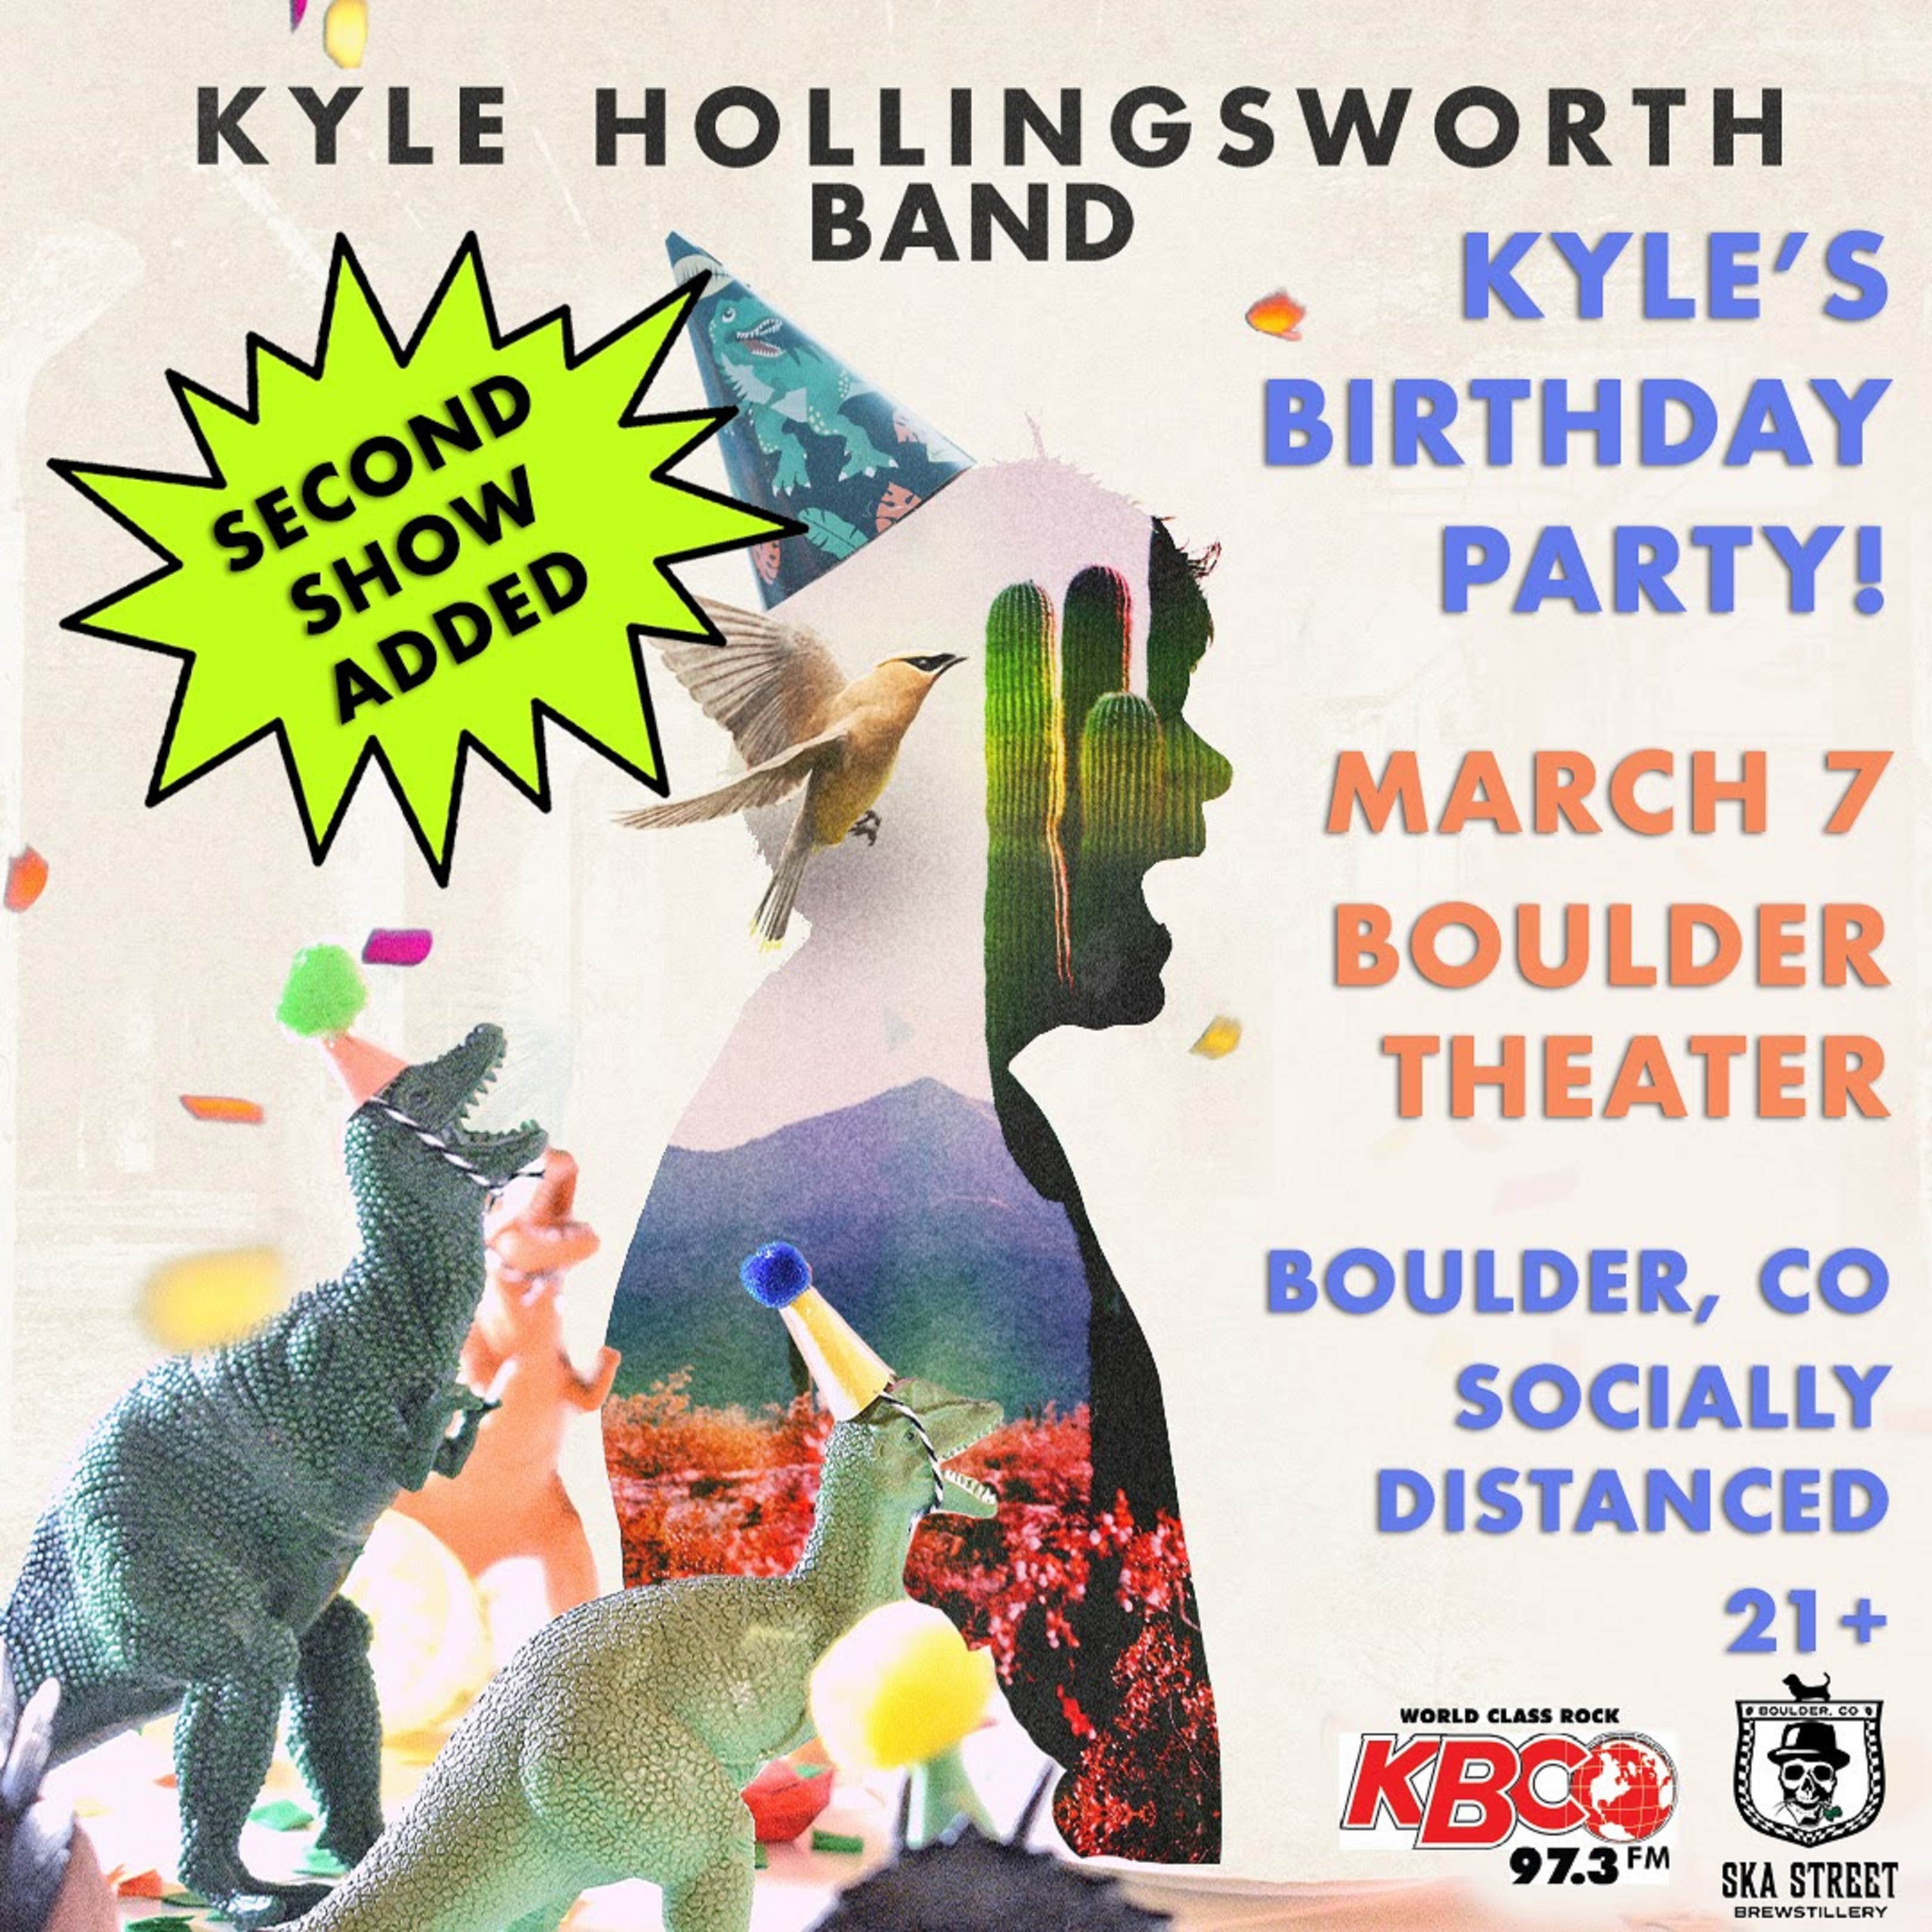 Kyle Hollingsworth Band Adds 2nd Birthday show in Boulder